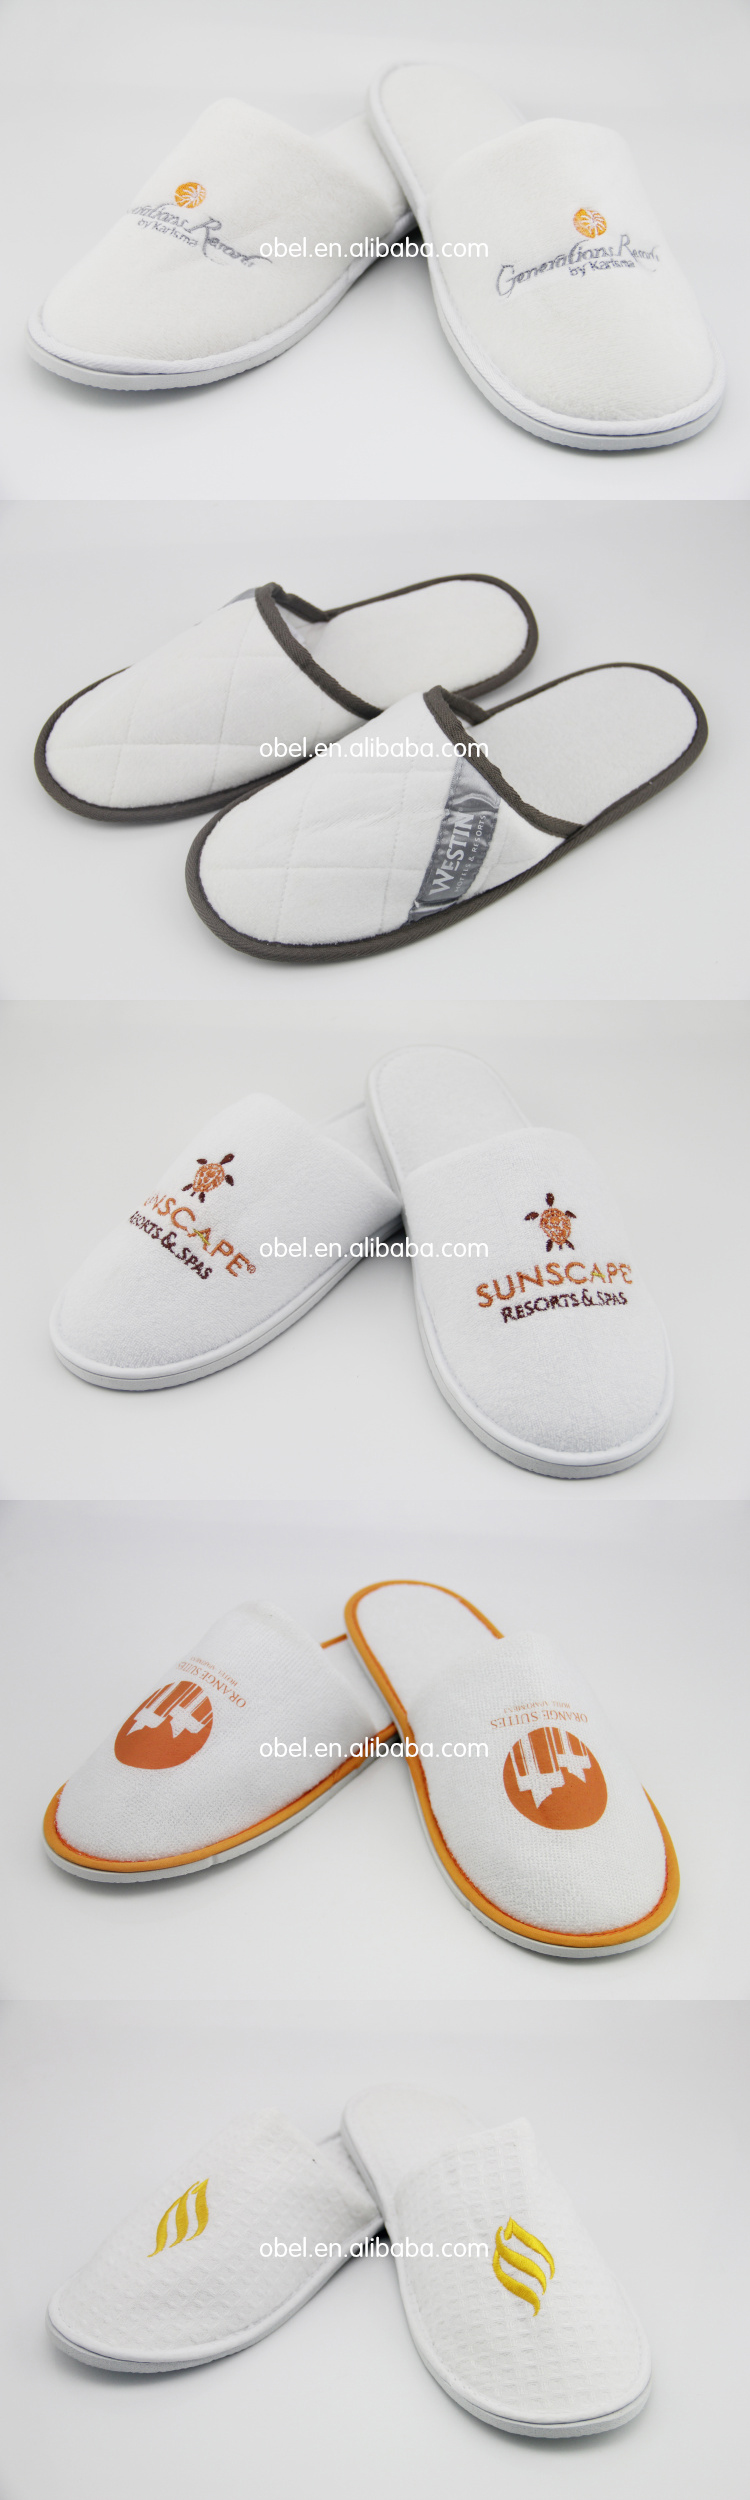 Disposable Slippers For Hotel